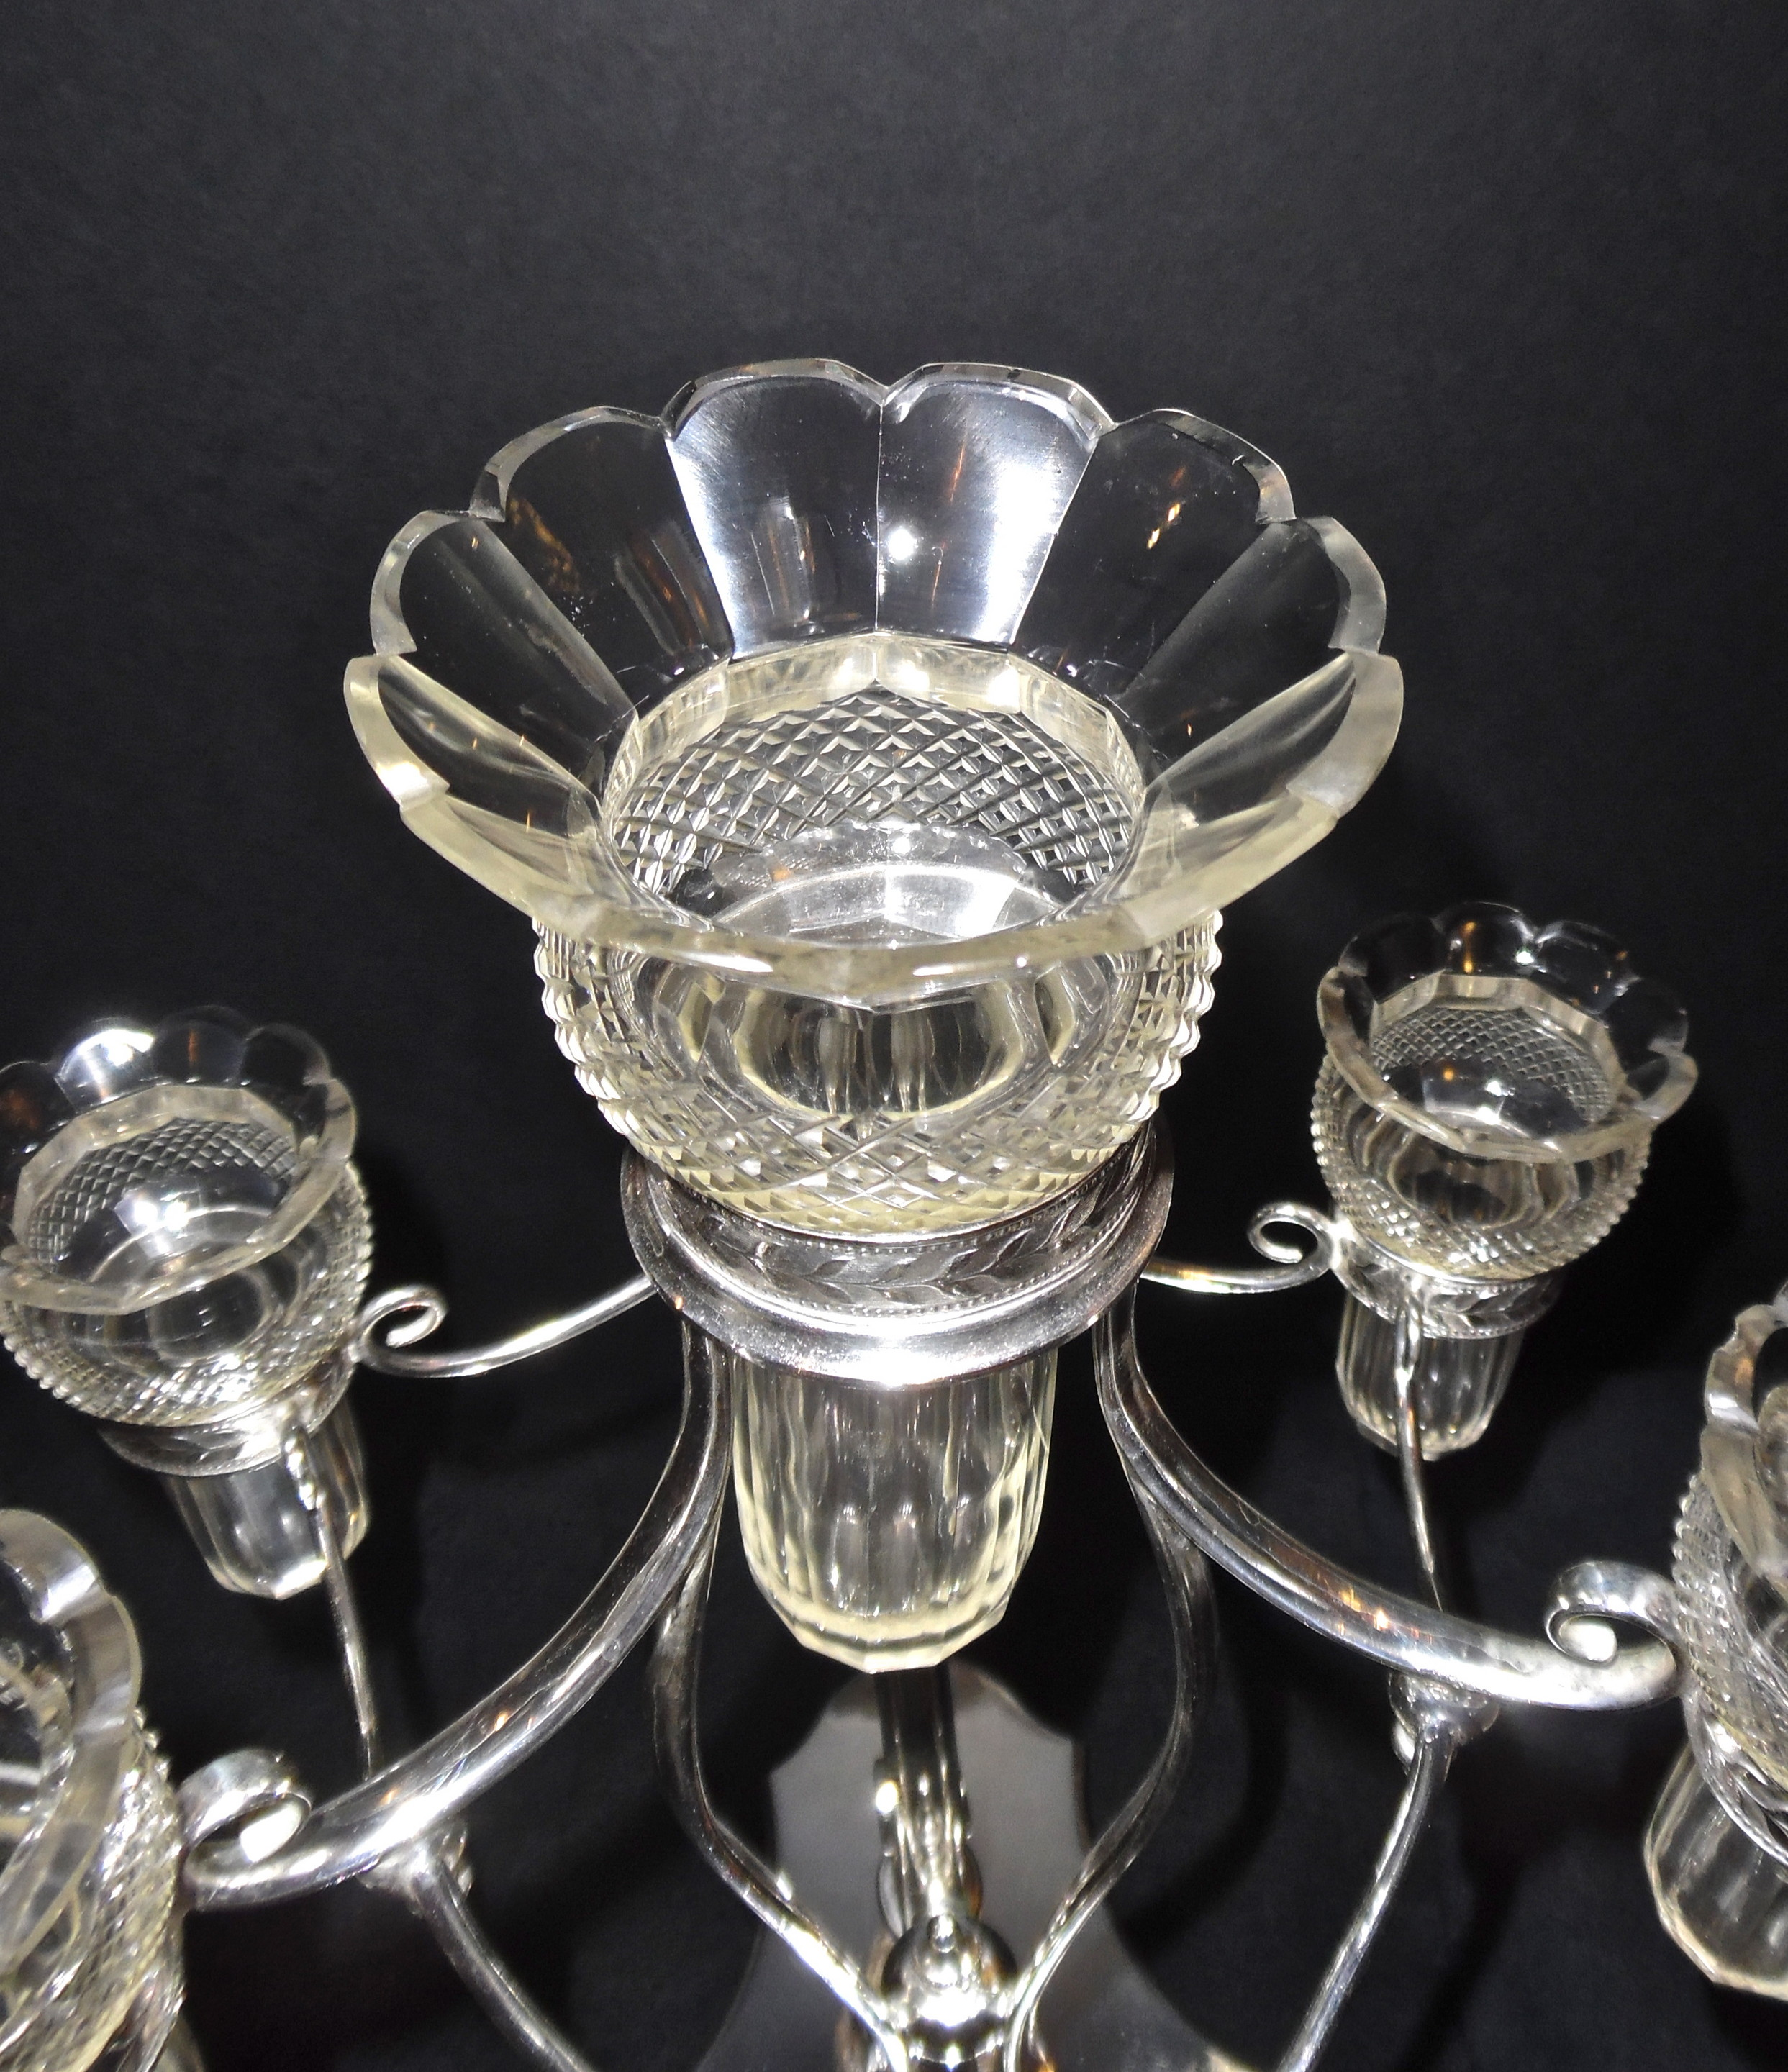 Enjoyable Fenton Glass Epergne | Sensational Epergne